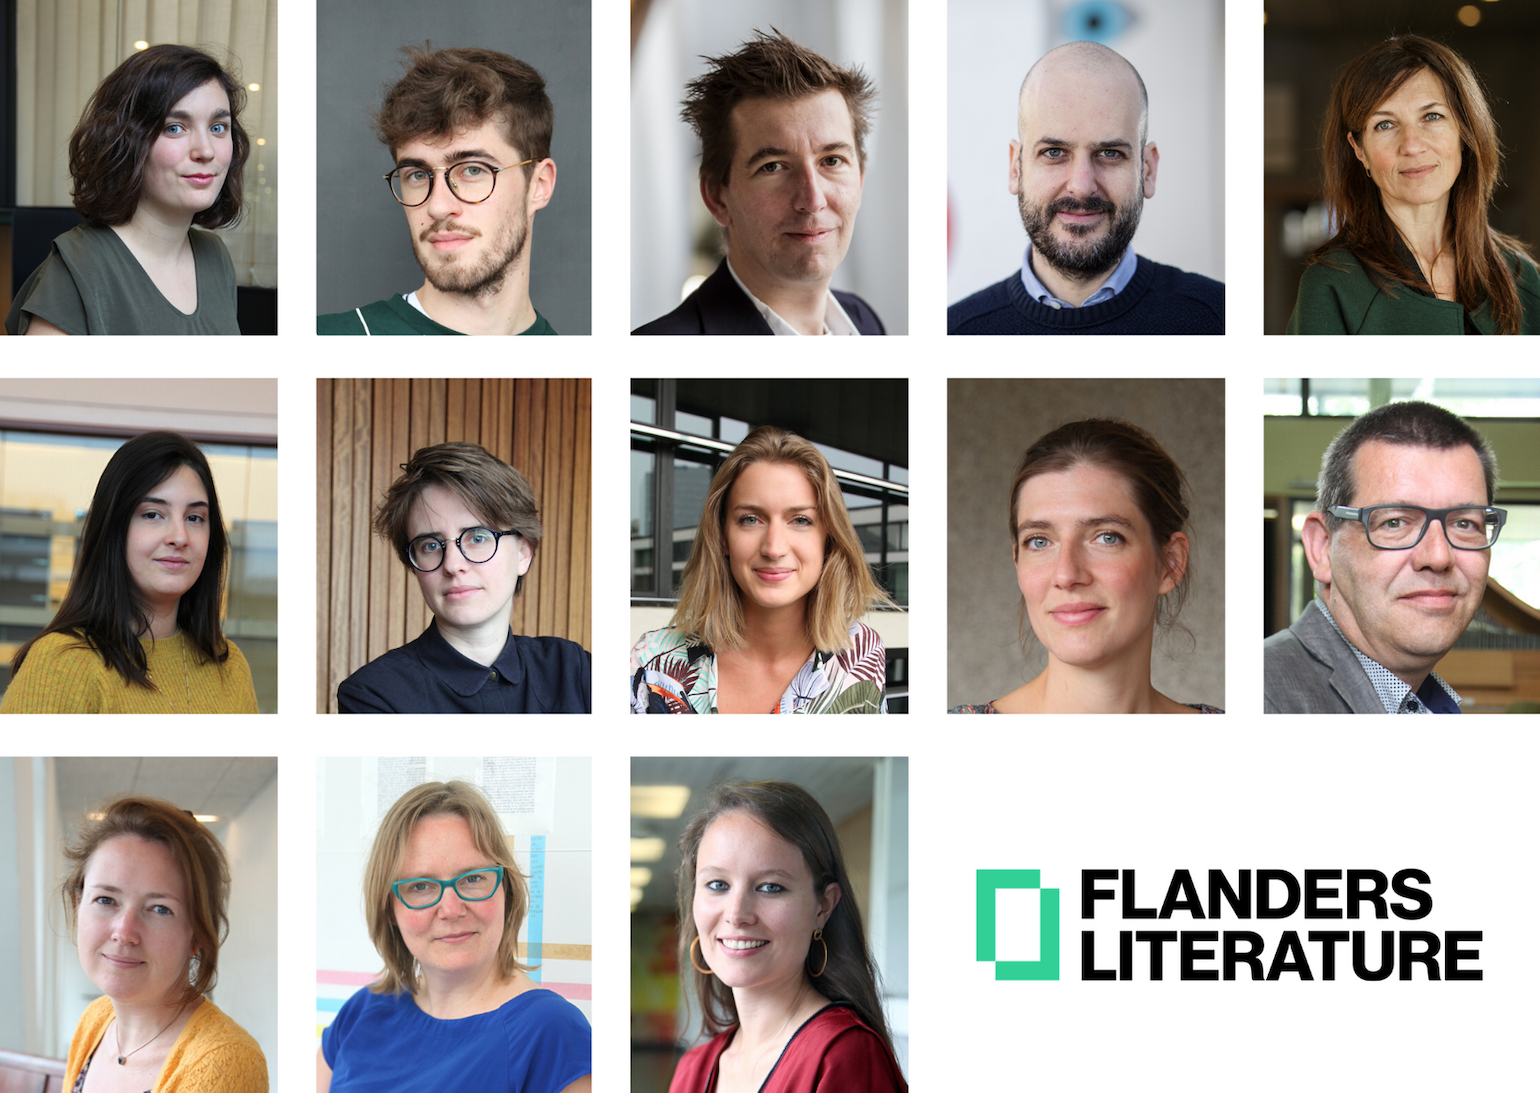 Team Flanders Literature